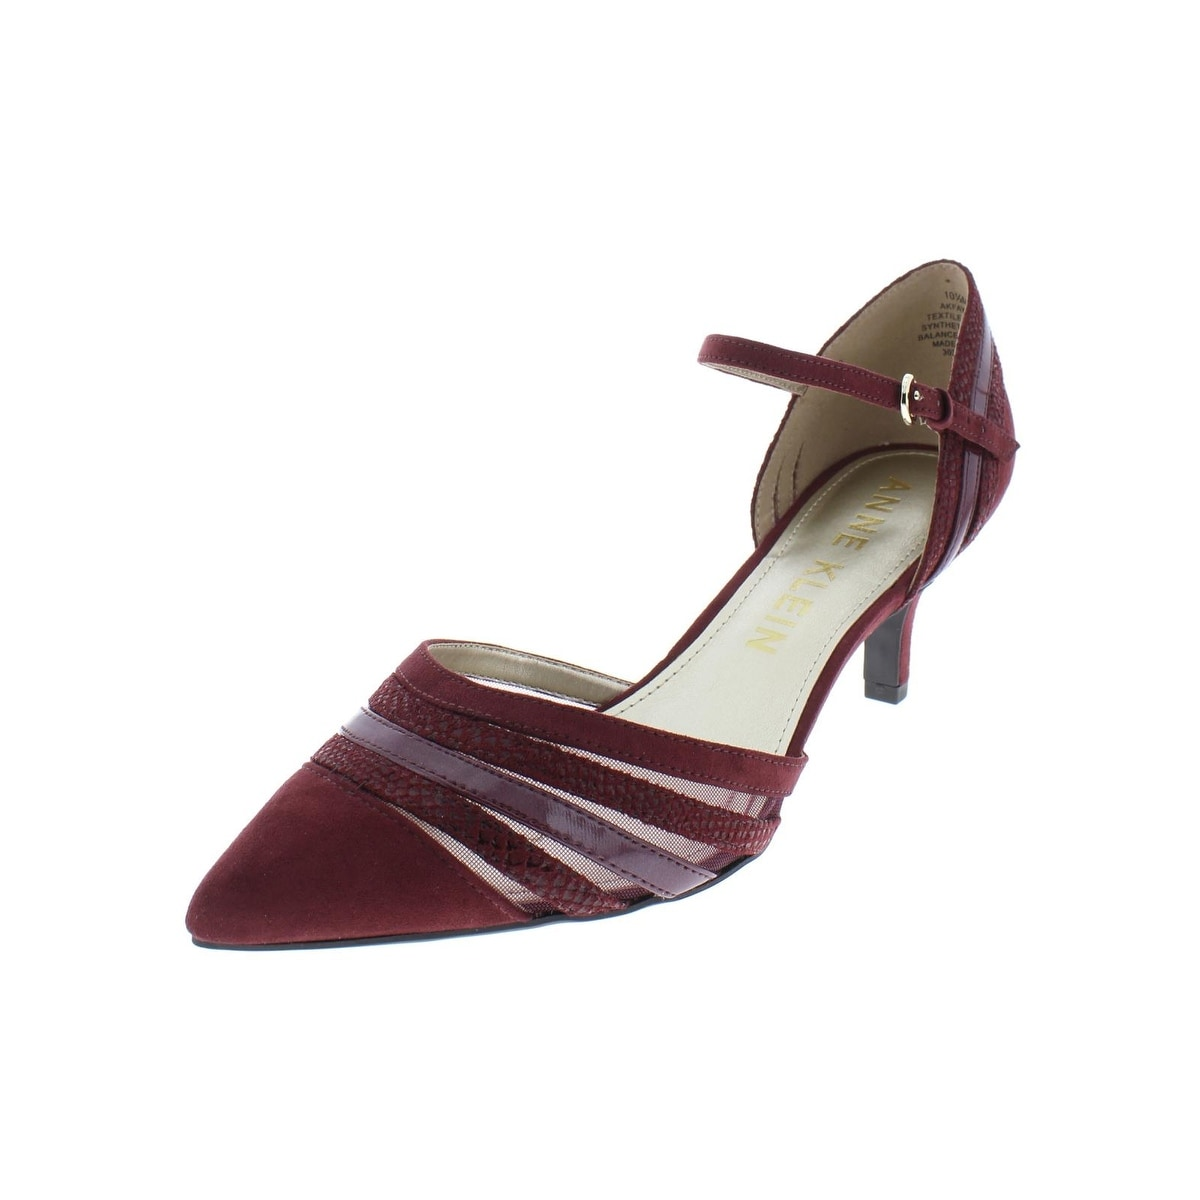 616c9aad7e Anne Klein Shoes | Shop our Best Clothing & Shoes Deals Online at Overstock